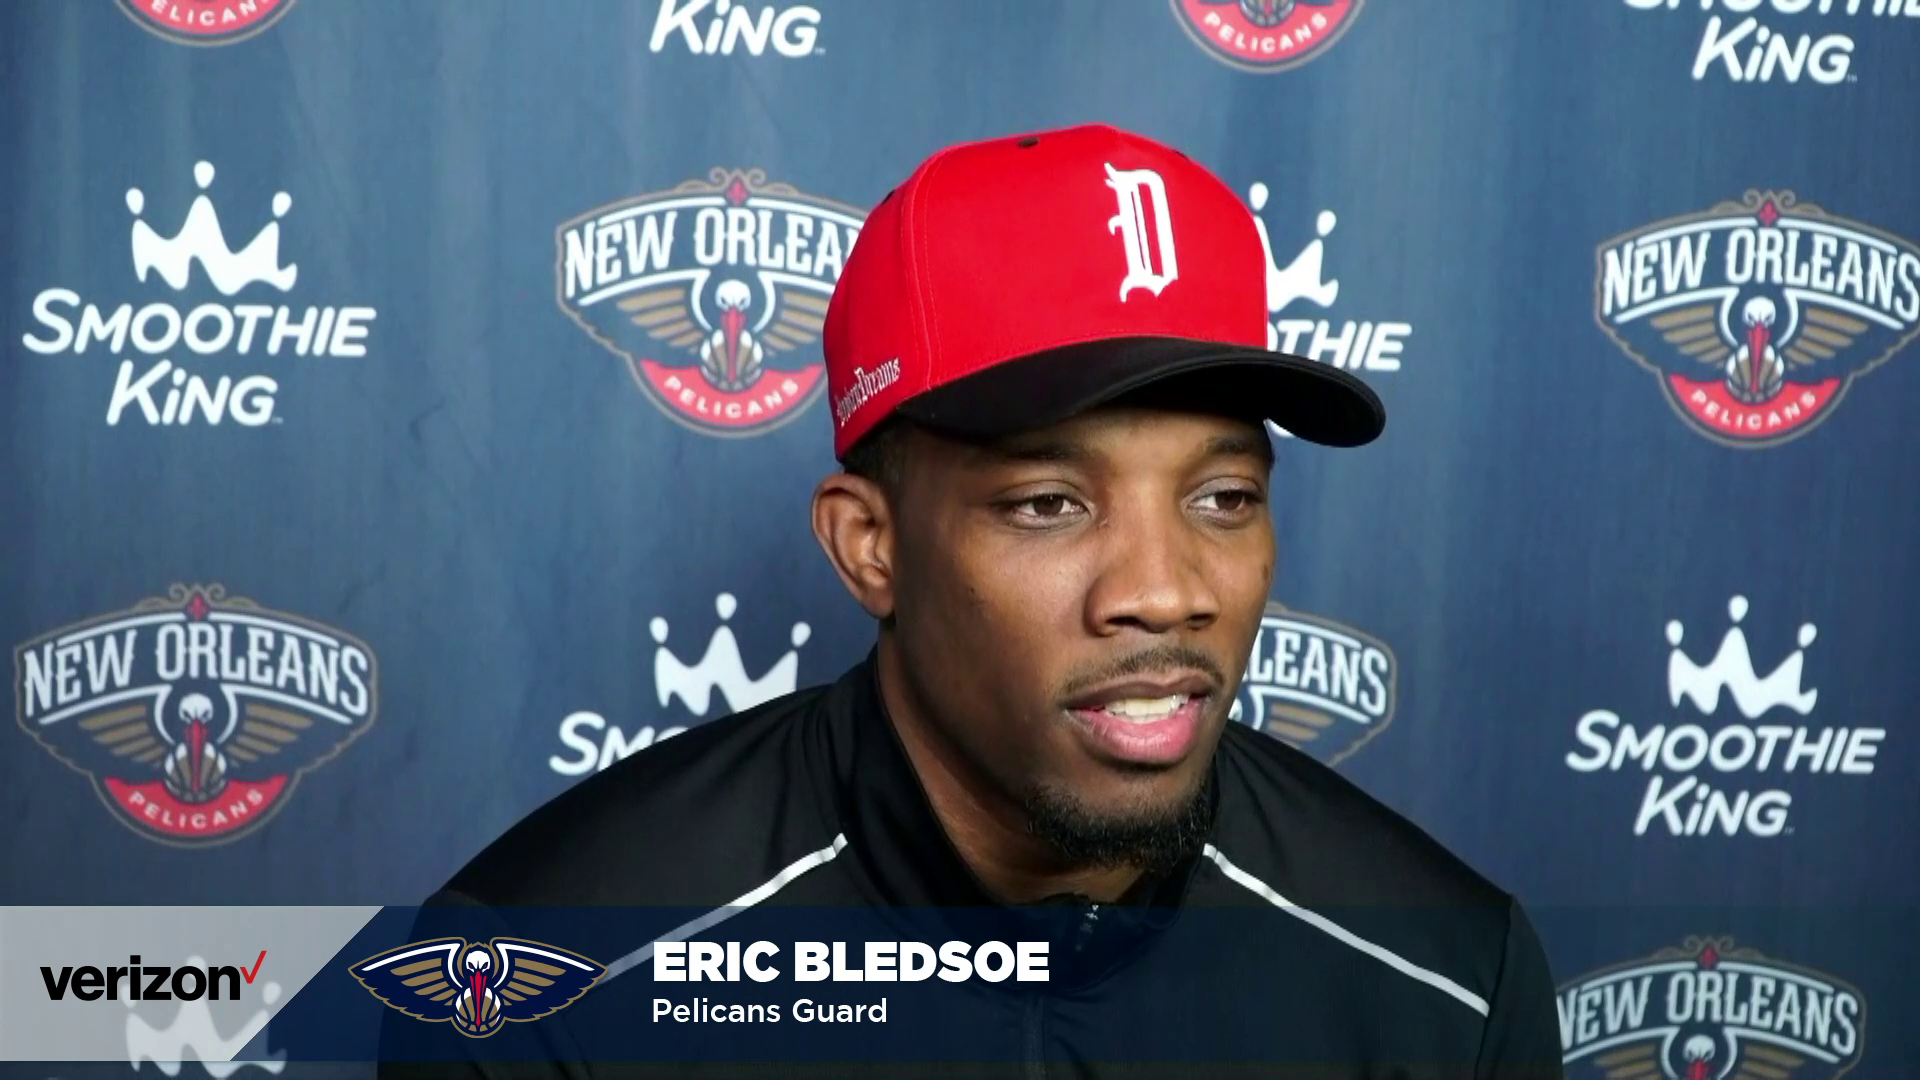 Eric Bledsoe End of Season Press Conference | 2020-21 Pelicans Season